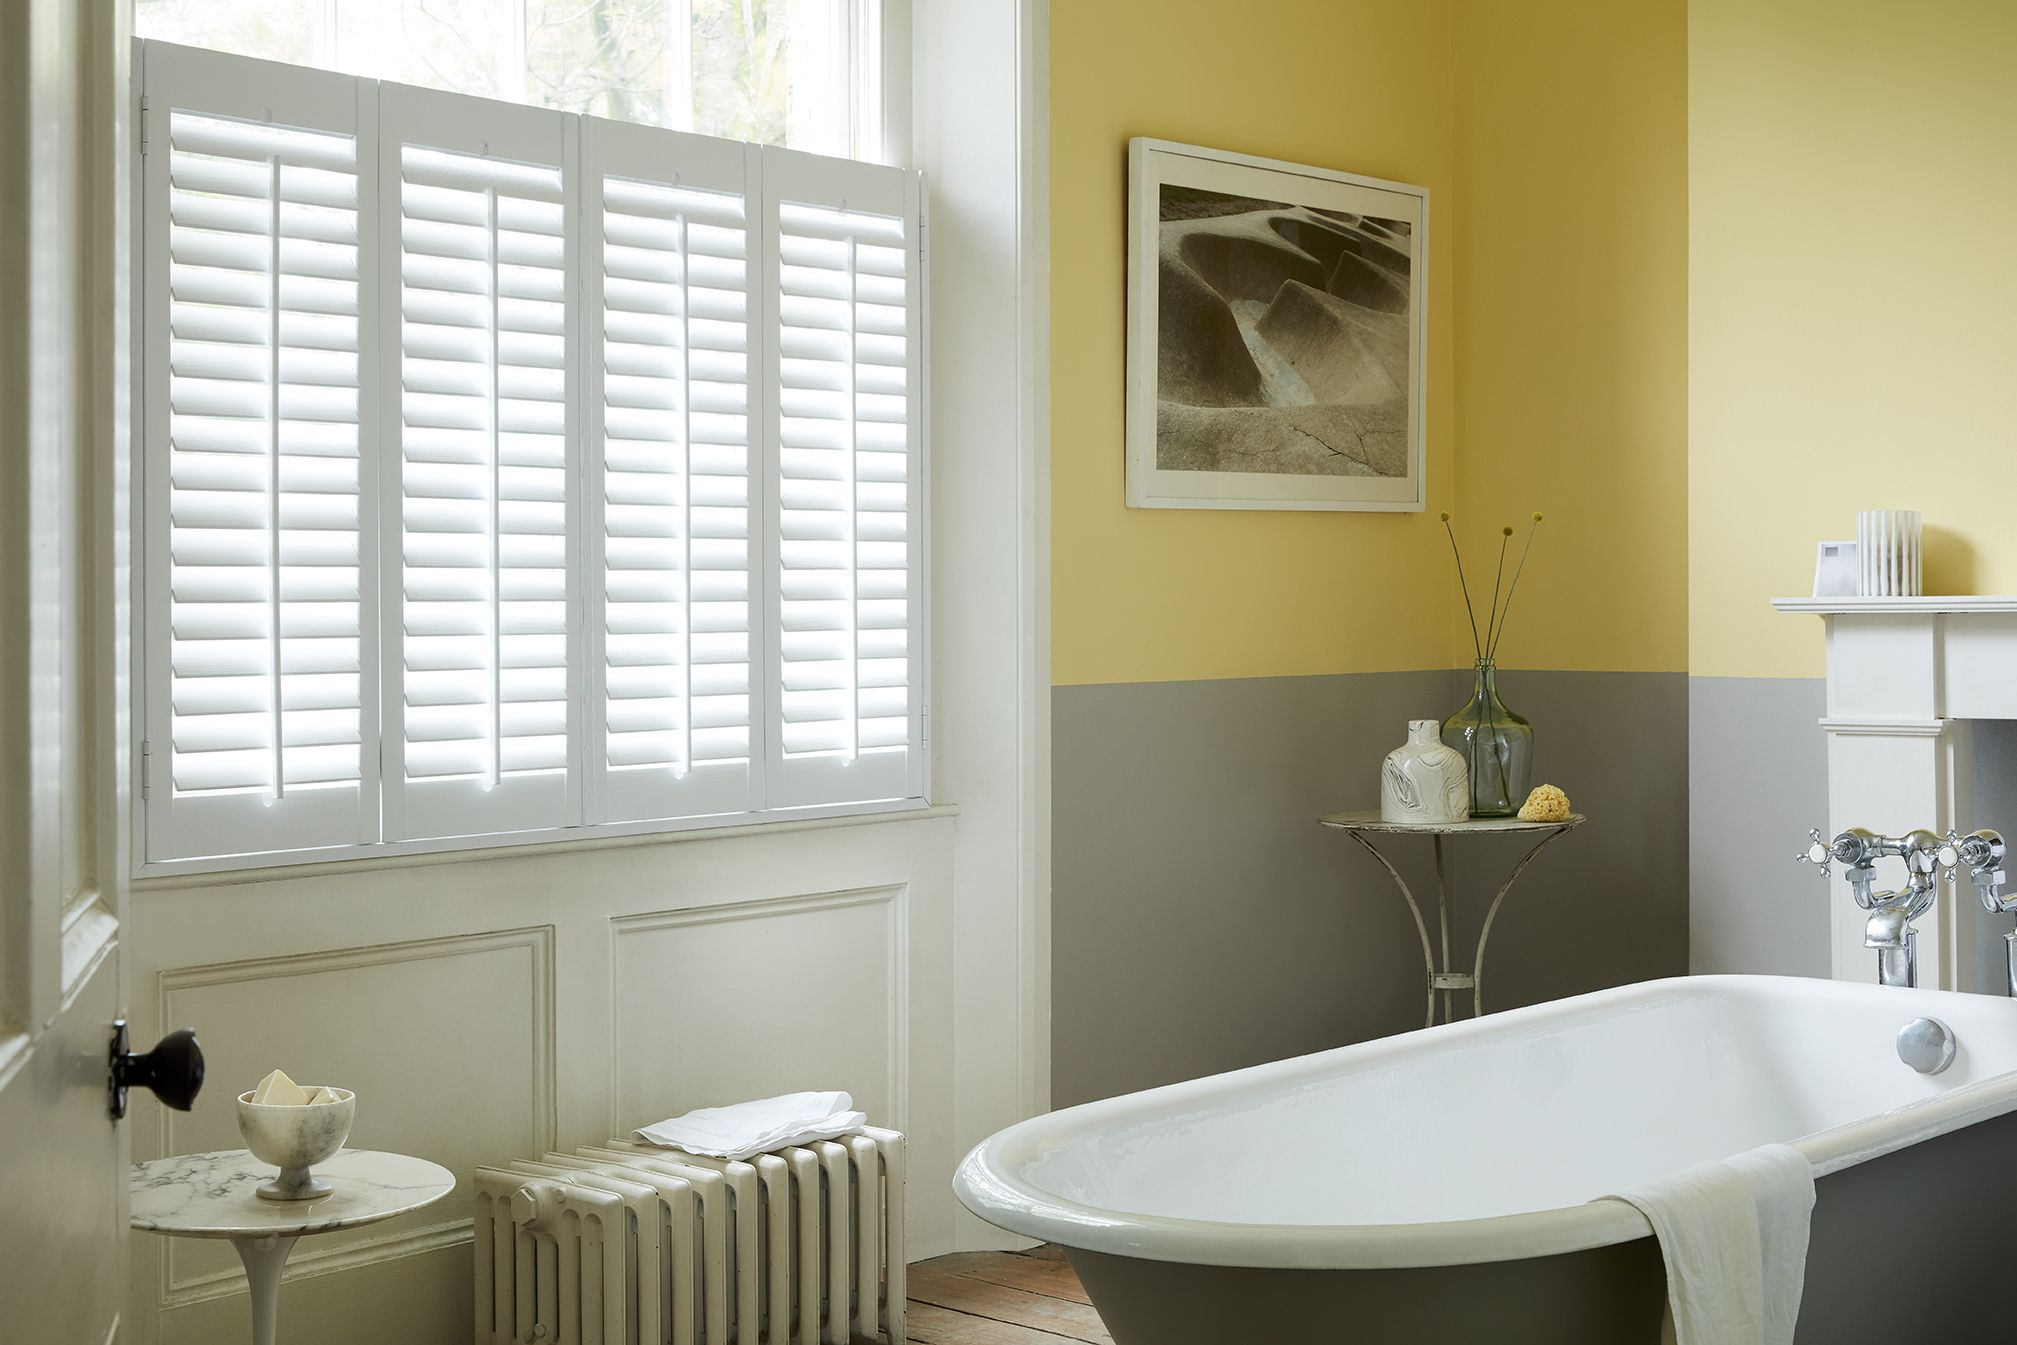 Made From High Grade Polyvinyl, These Window Shutters Are 100% Waterproof  And Highly Durable. They Are Ideal For Rooms With A High Level Of Humidity  Such As ...